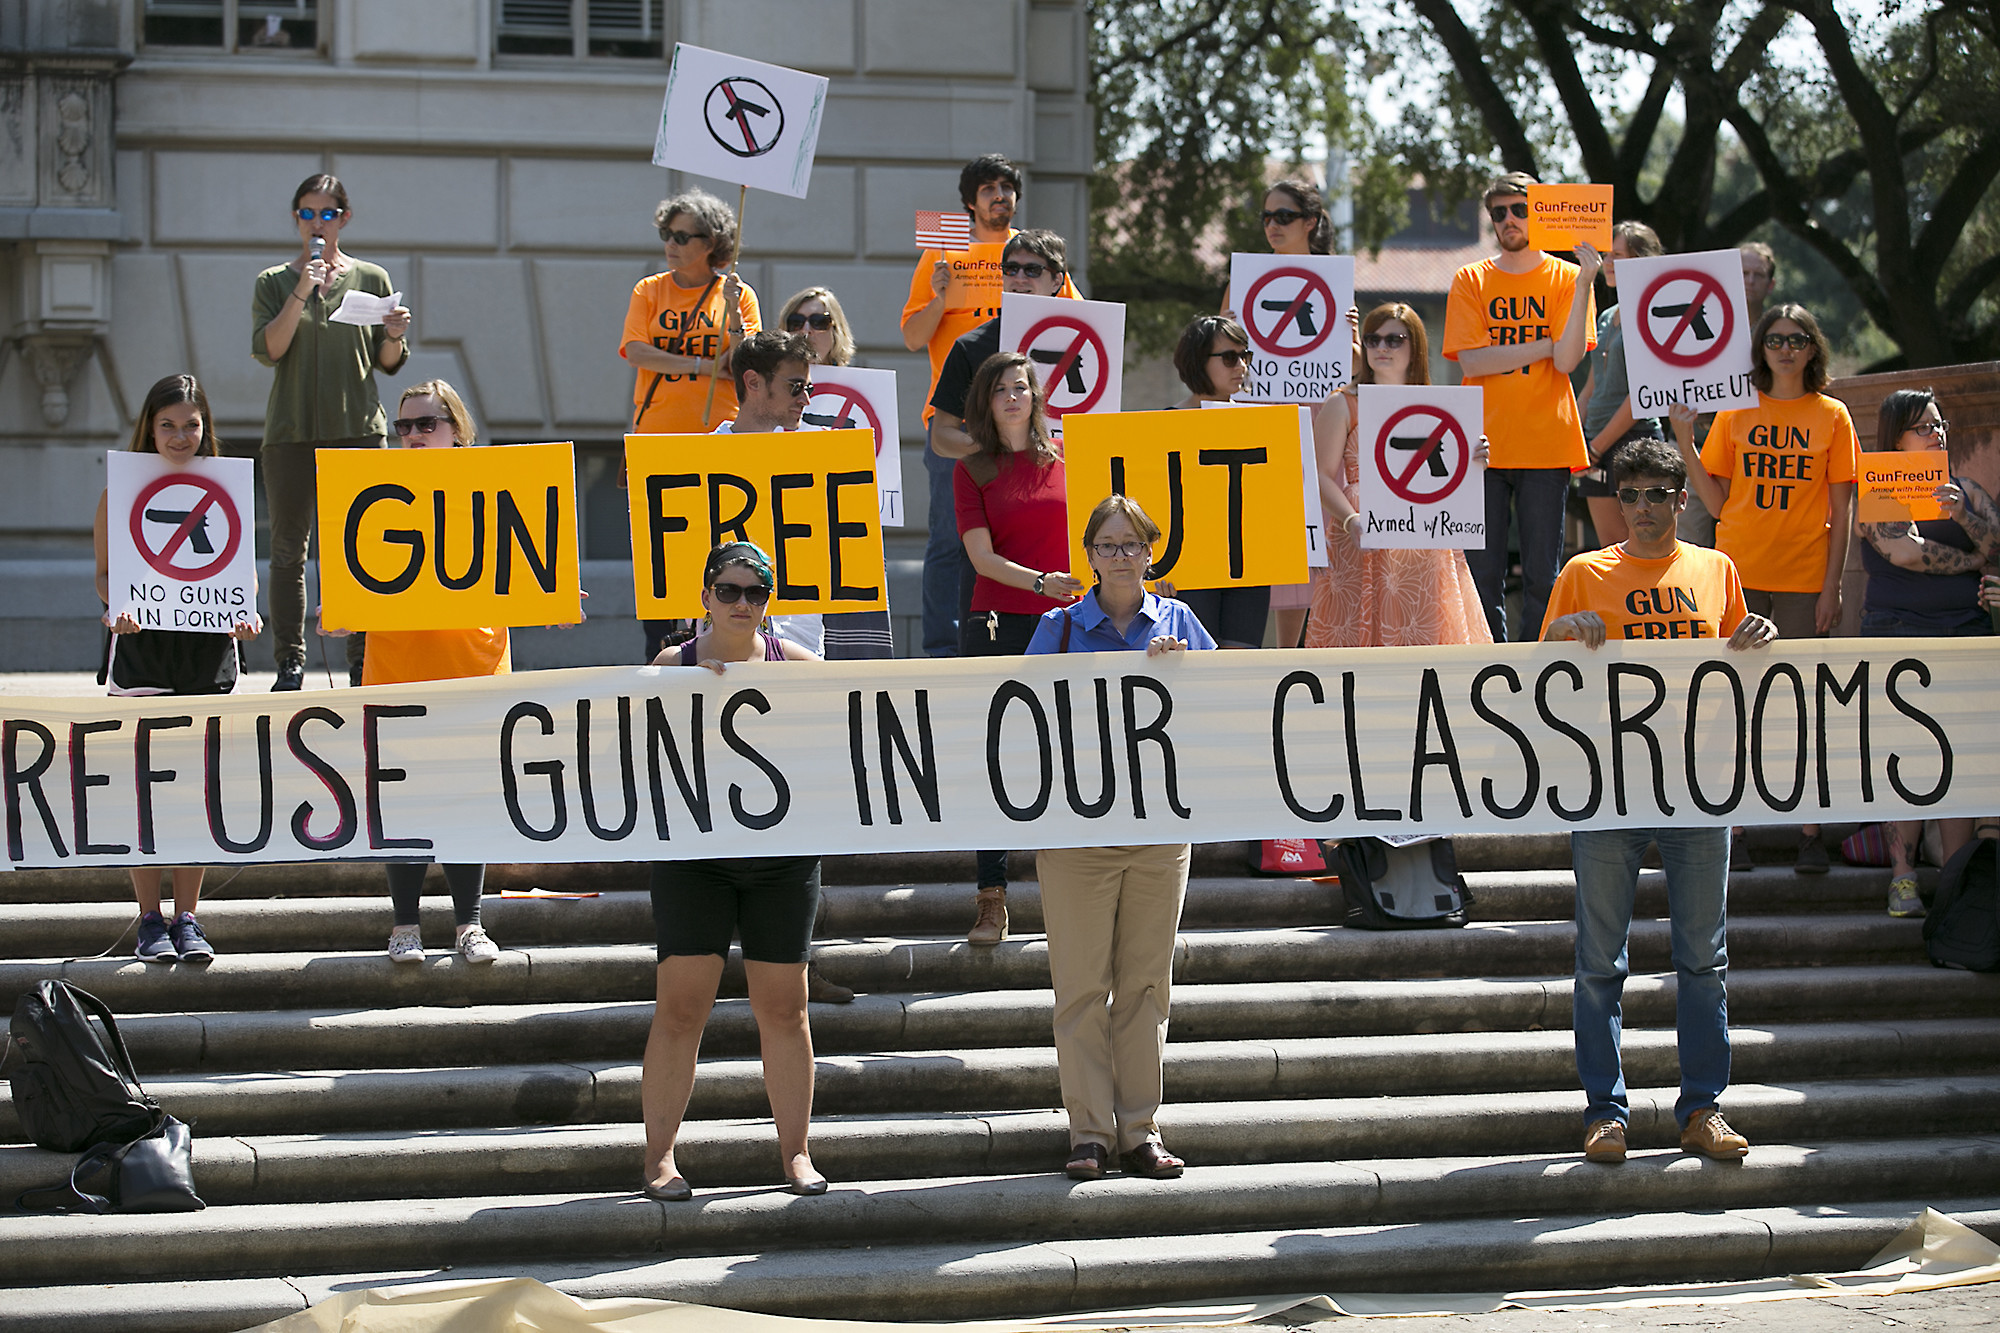 the issues surrounding the concealed weapon permit in college campuses Shall issue: the new wave of concealed handgun permit laws, cramer c and kopel d golden co: encouraging mass murder on campus an analysis of the arrest rate of texas concealed carry handgun license holders as compared to the arrest rate of the entire texas population.